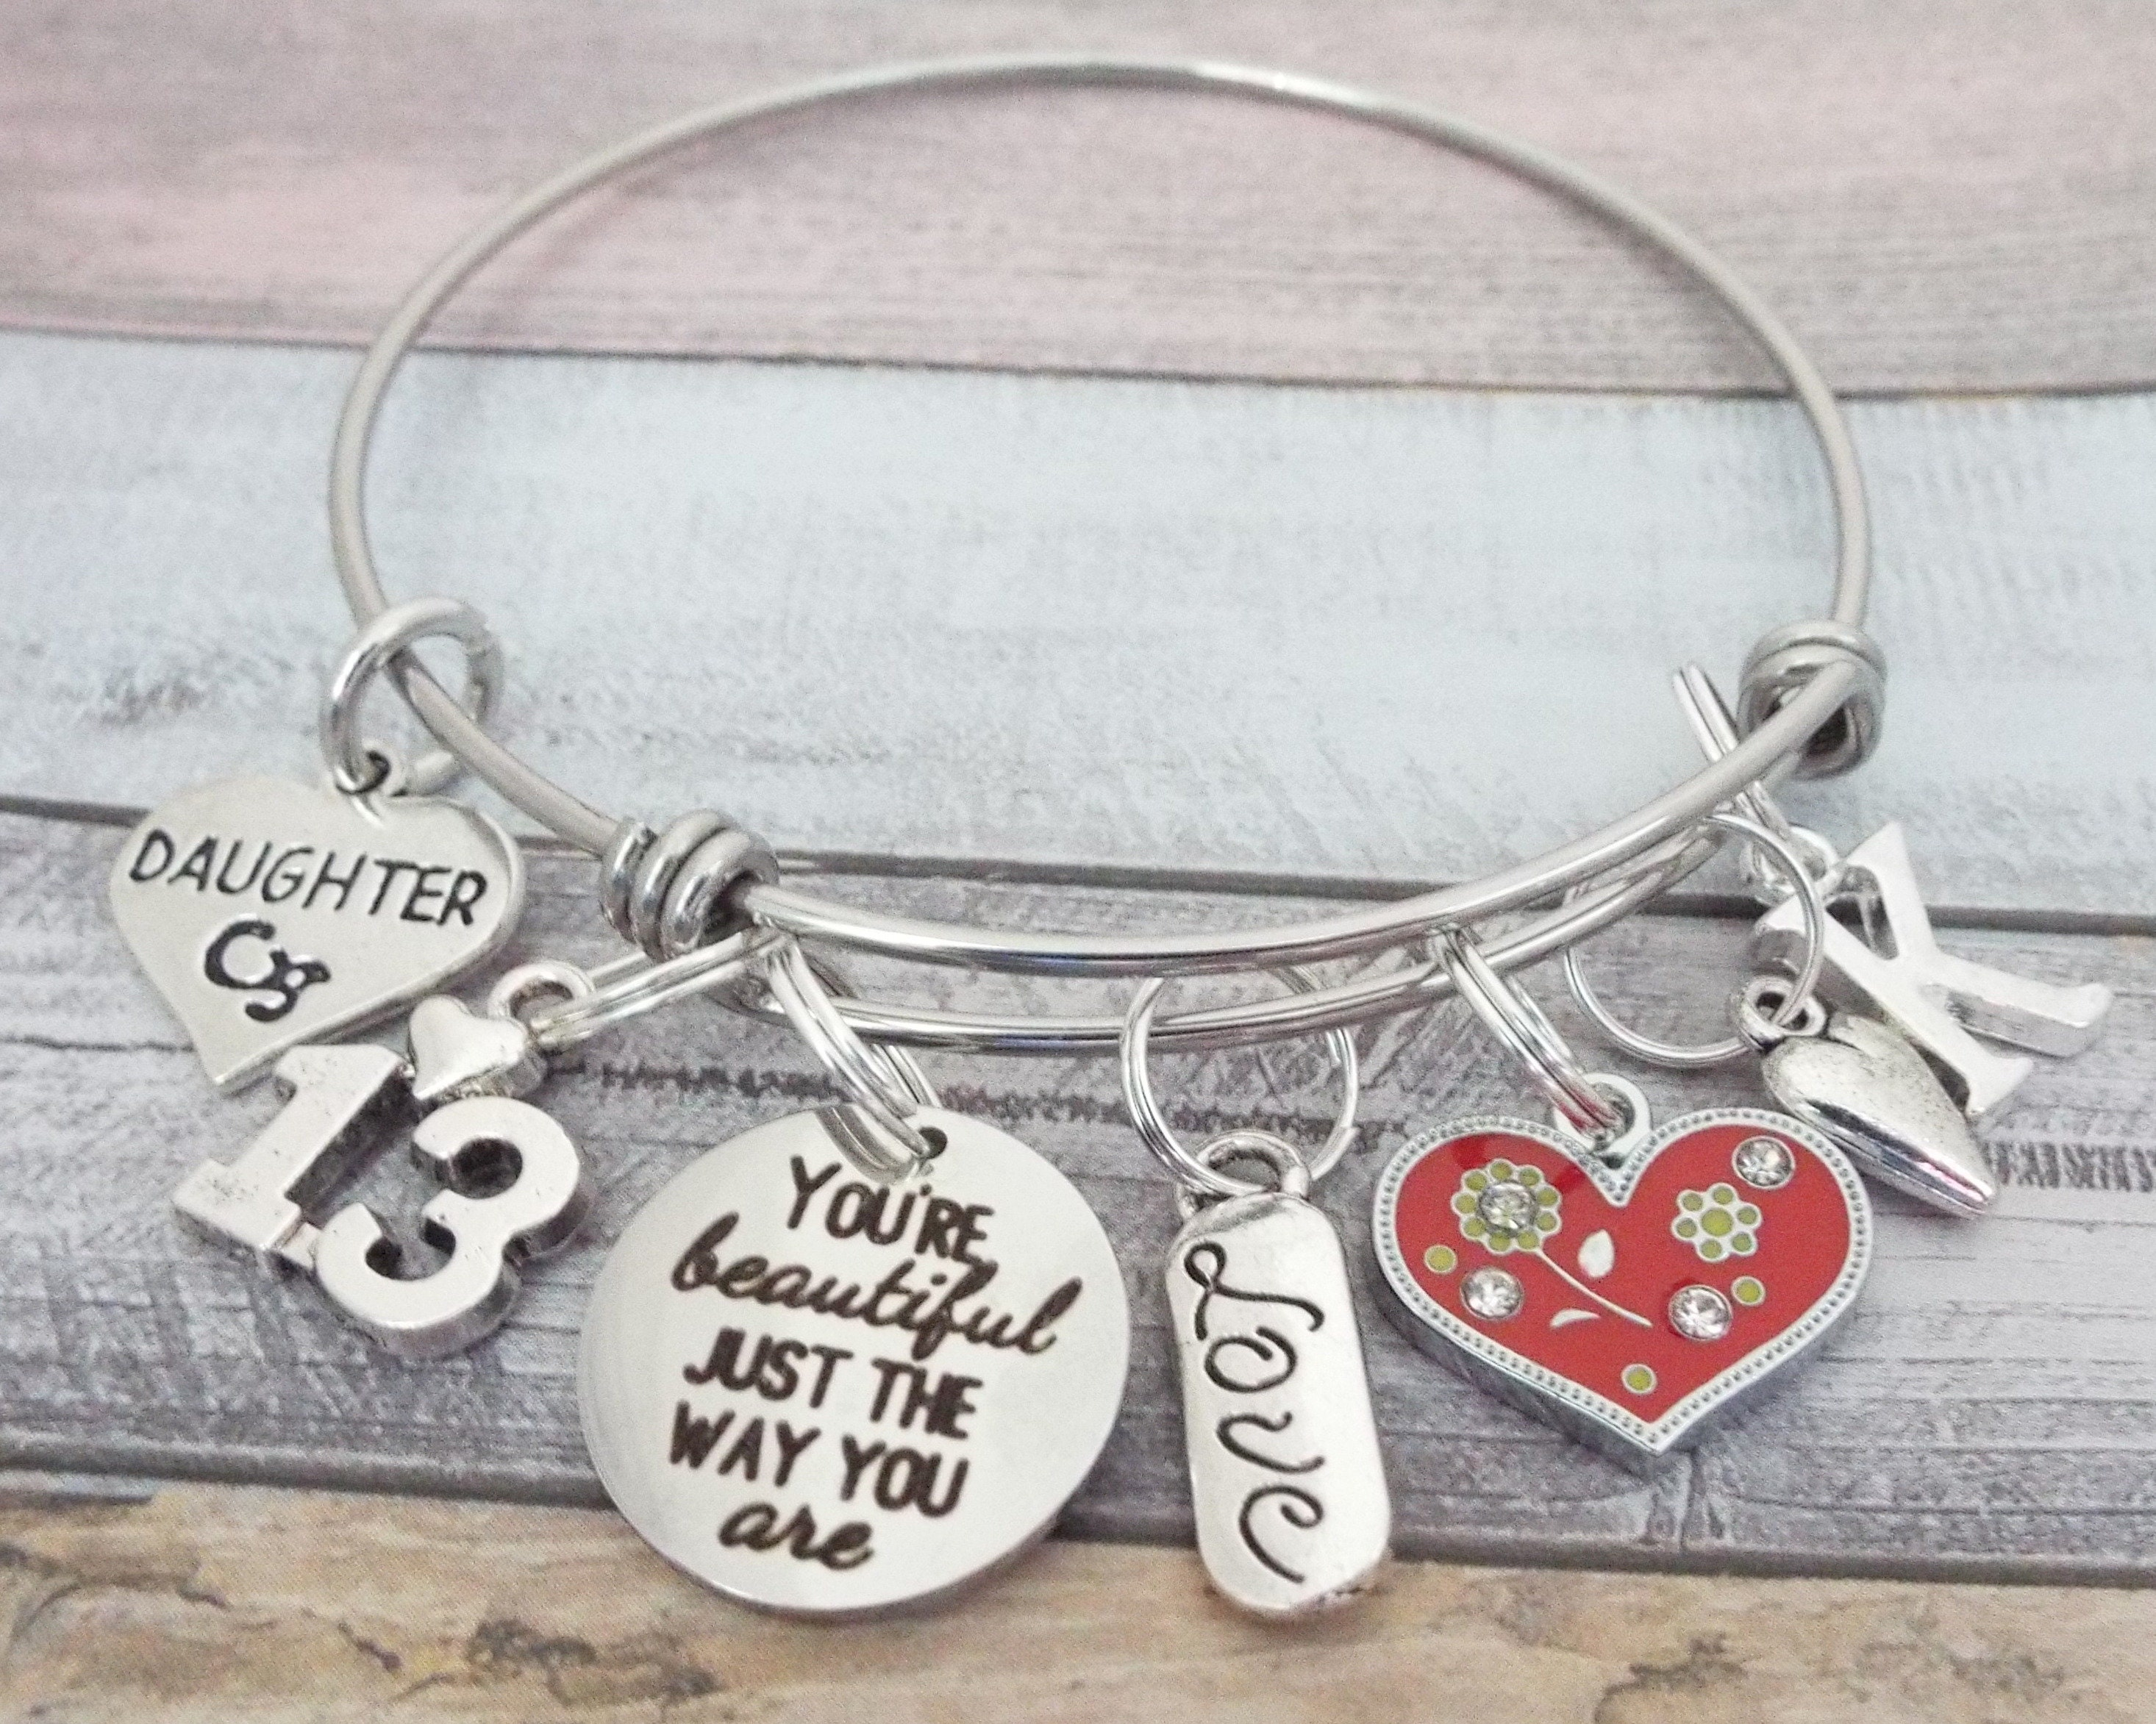 Personalized Daughter Birthday Gift Charm Bracelet Teenage Girl Teenager Jewelry Custom From Mom Mother